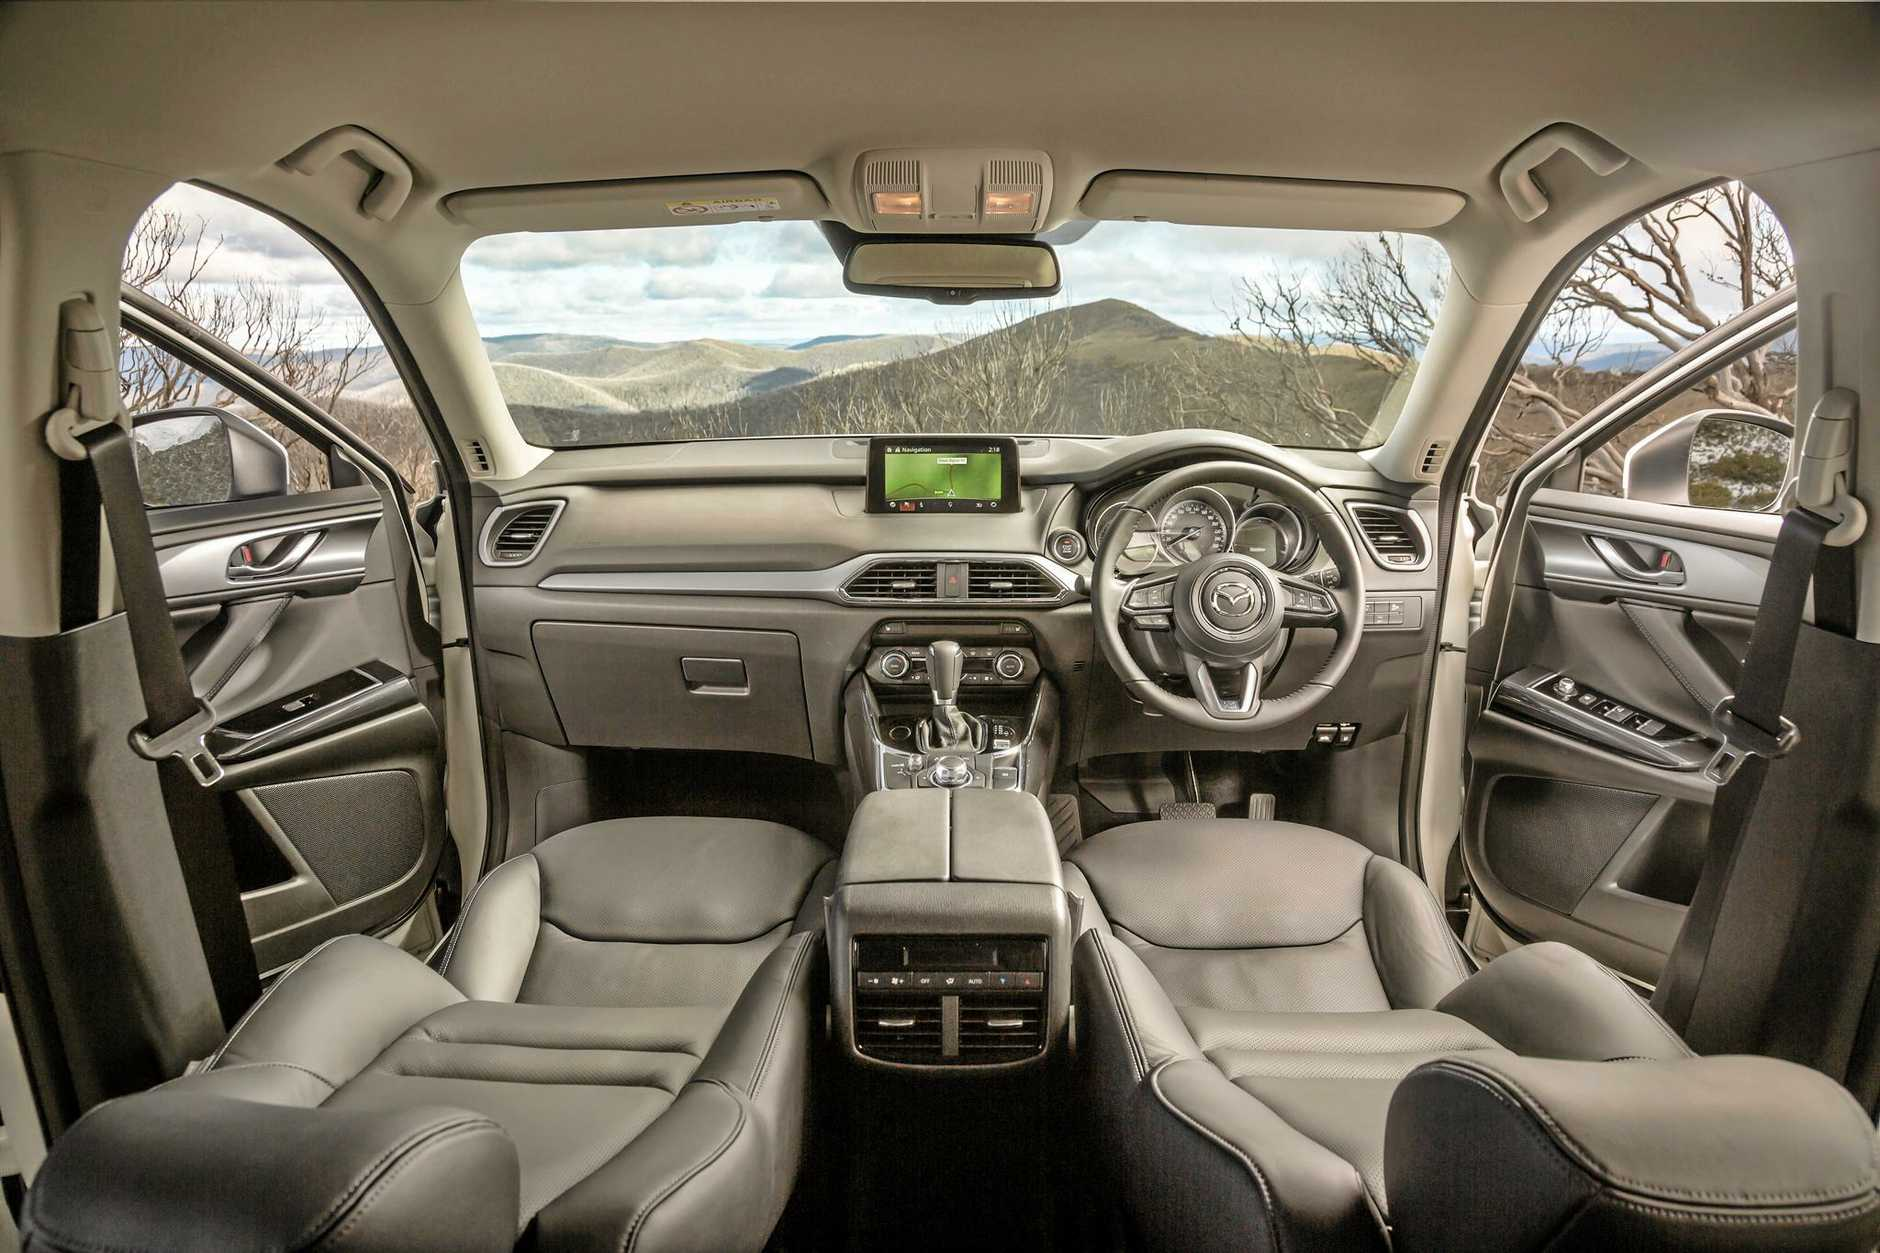 Inside the 2016 Mazda CX-9.